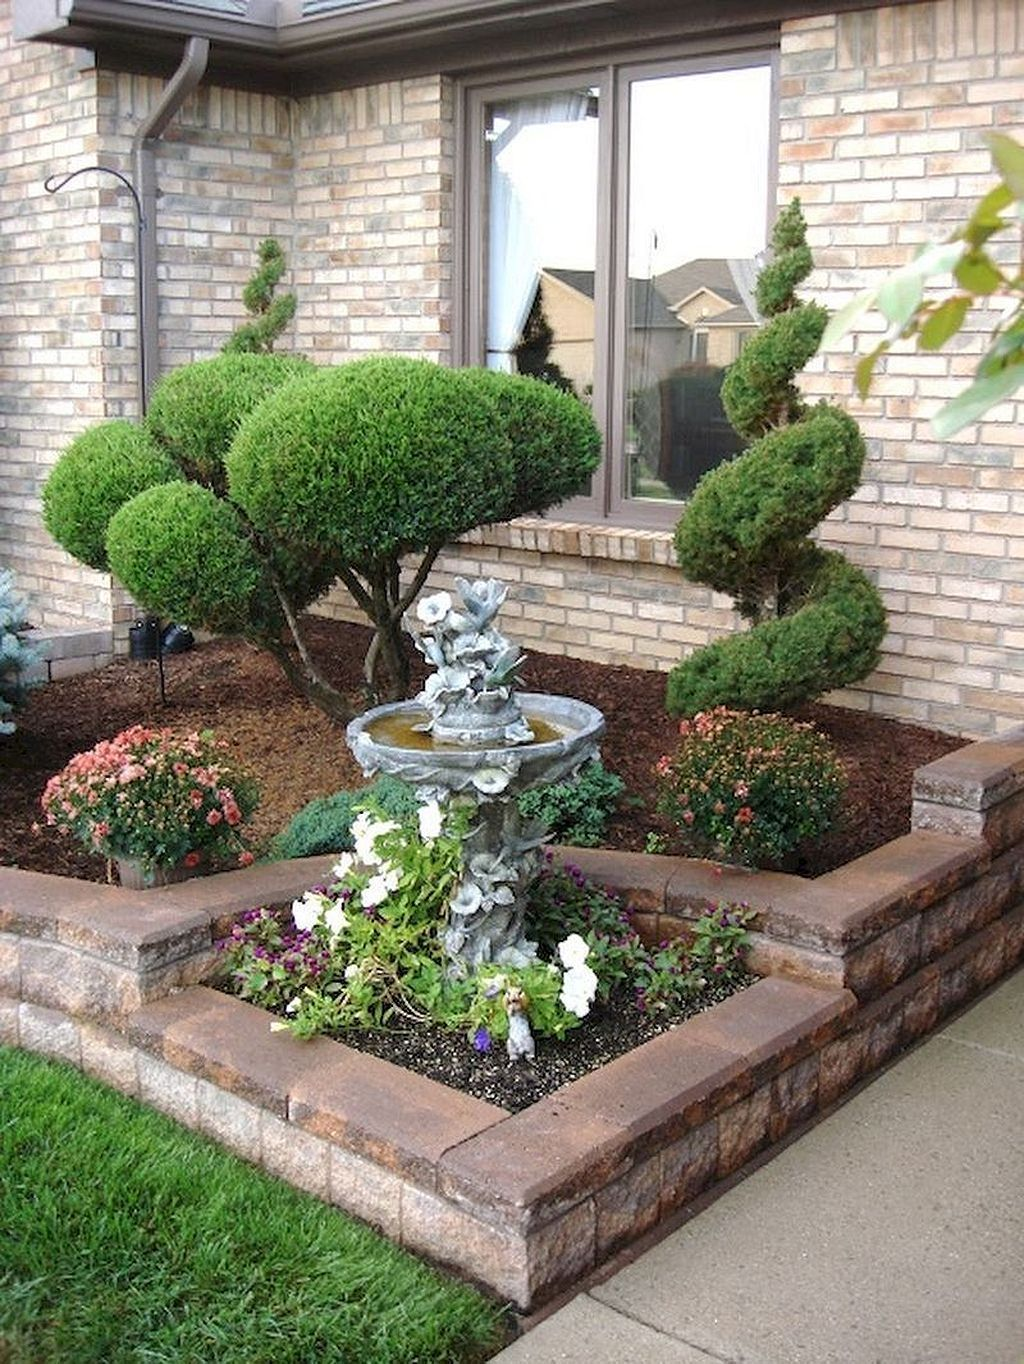 Great 15 Beautiful Front Yard Landscaping Budget Friendly Ideas Https Homed Front Yard Landscaping Design Small Front Yard Landscaping Front Yard Landscaping